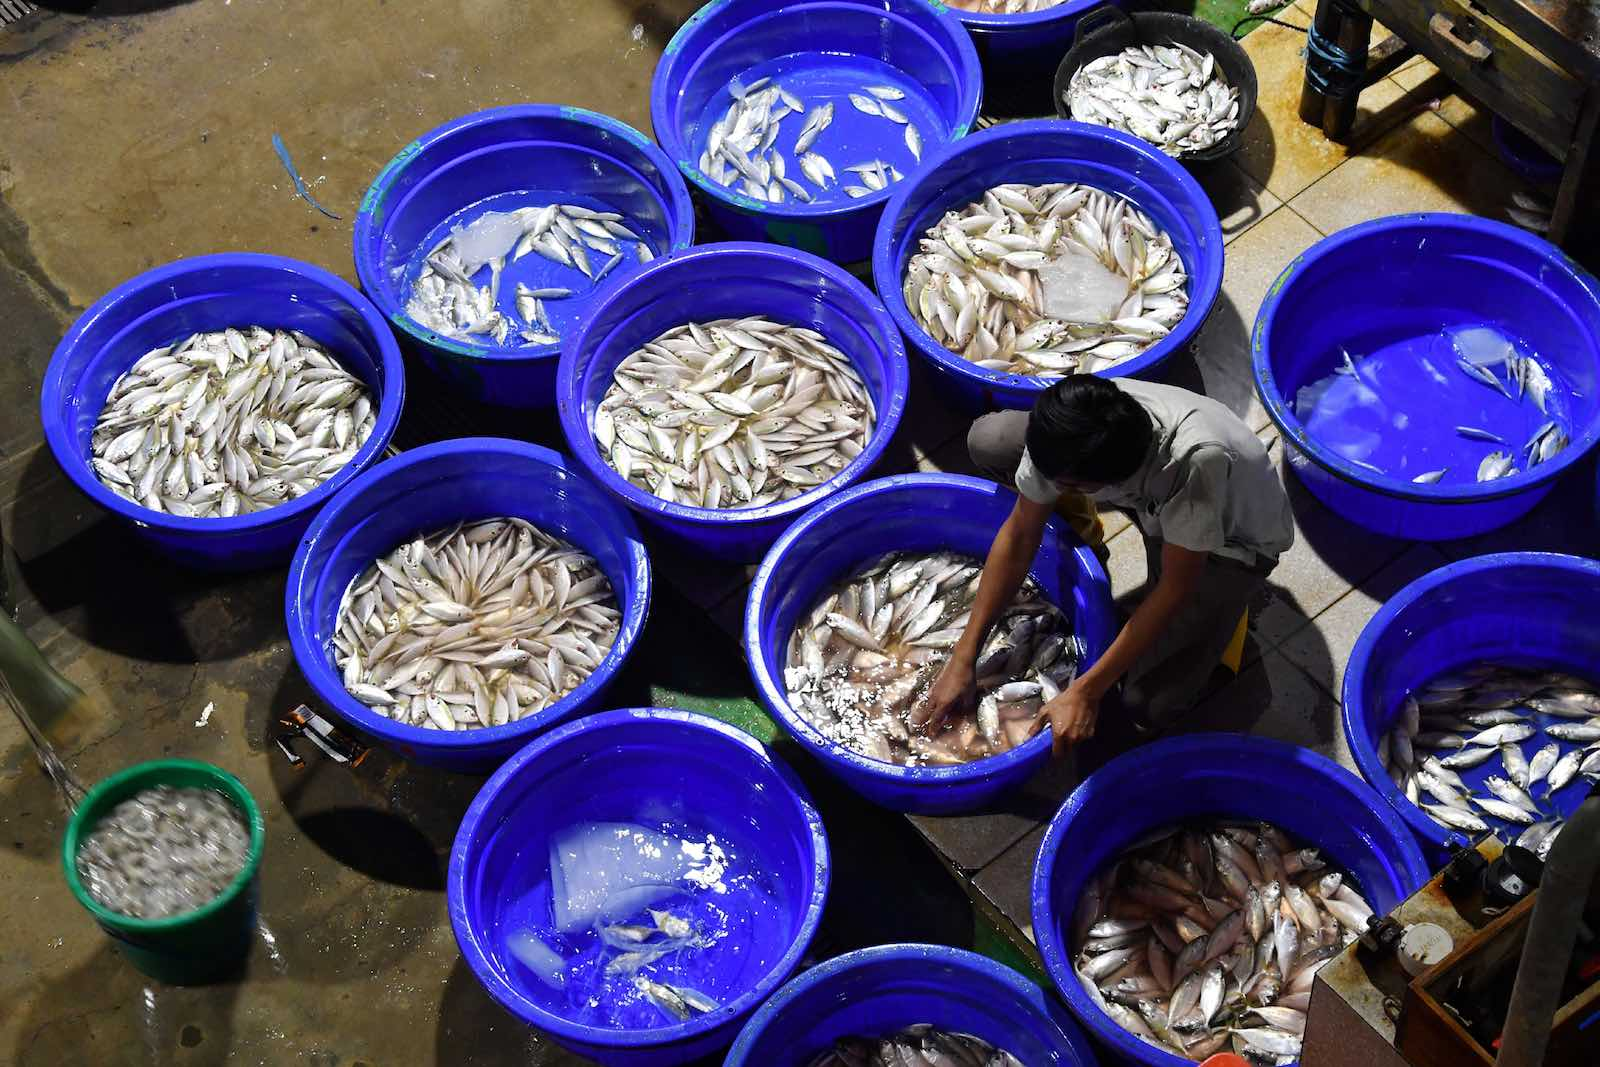 Muara Baru fish market in Jakarta (Photo: Adek Berry/AFP/Getty Images)